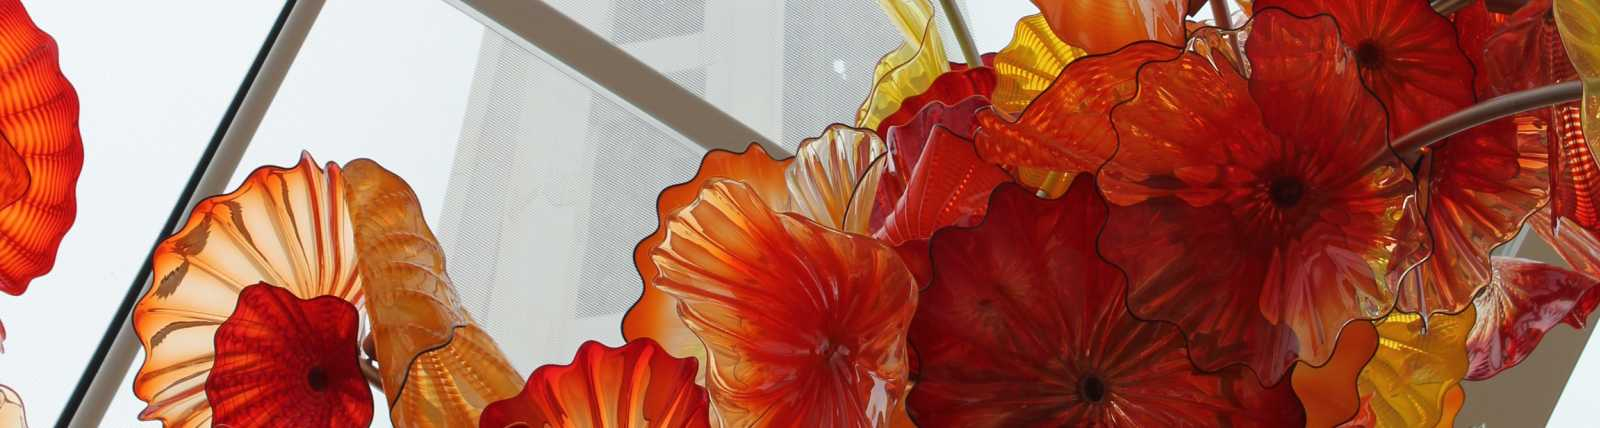 Chihuly_Garden_and_Glass-8.JPG